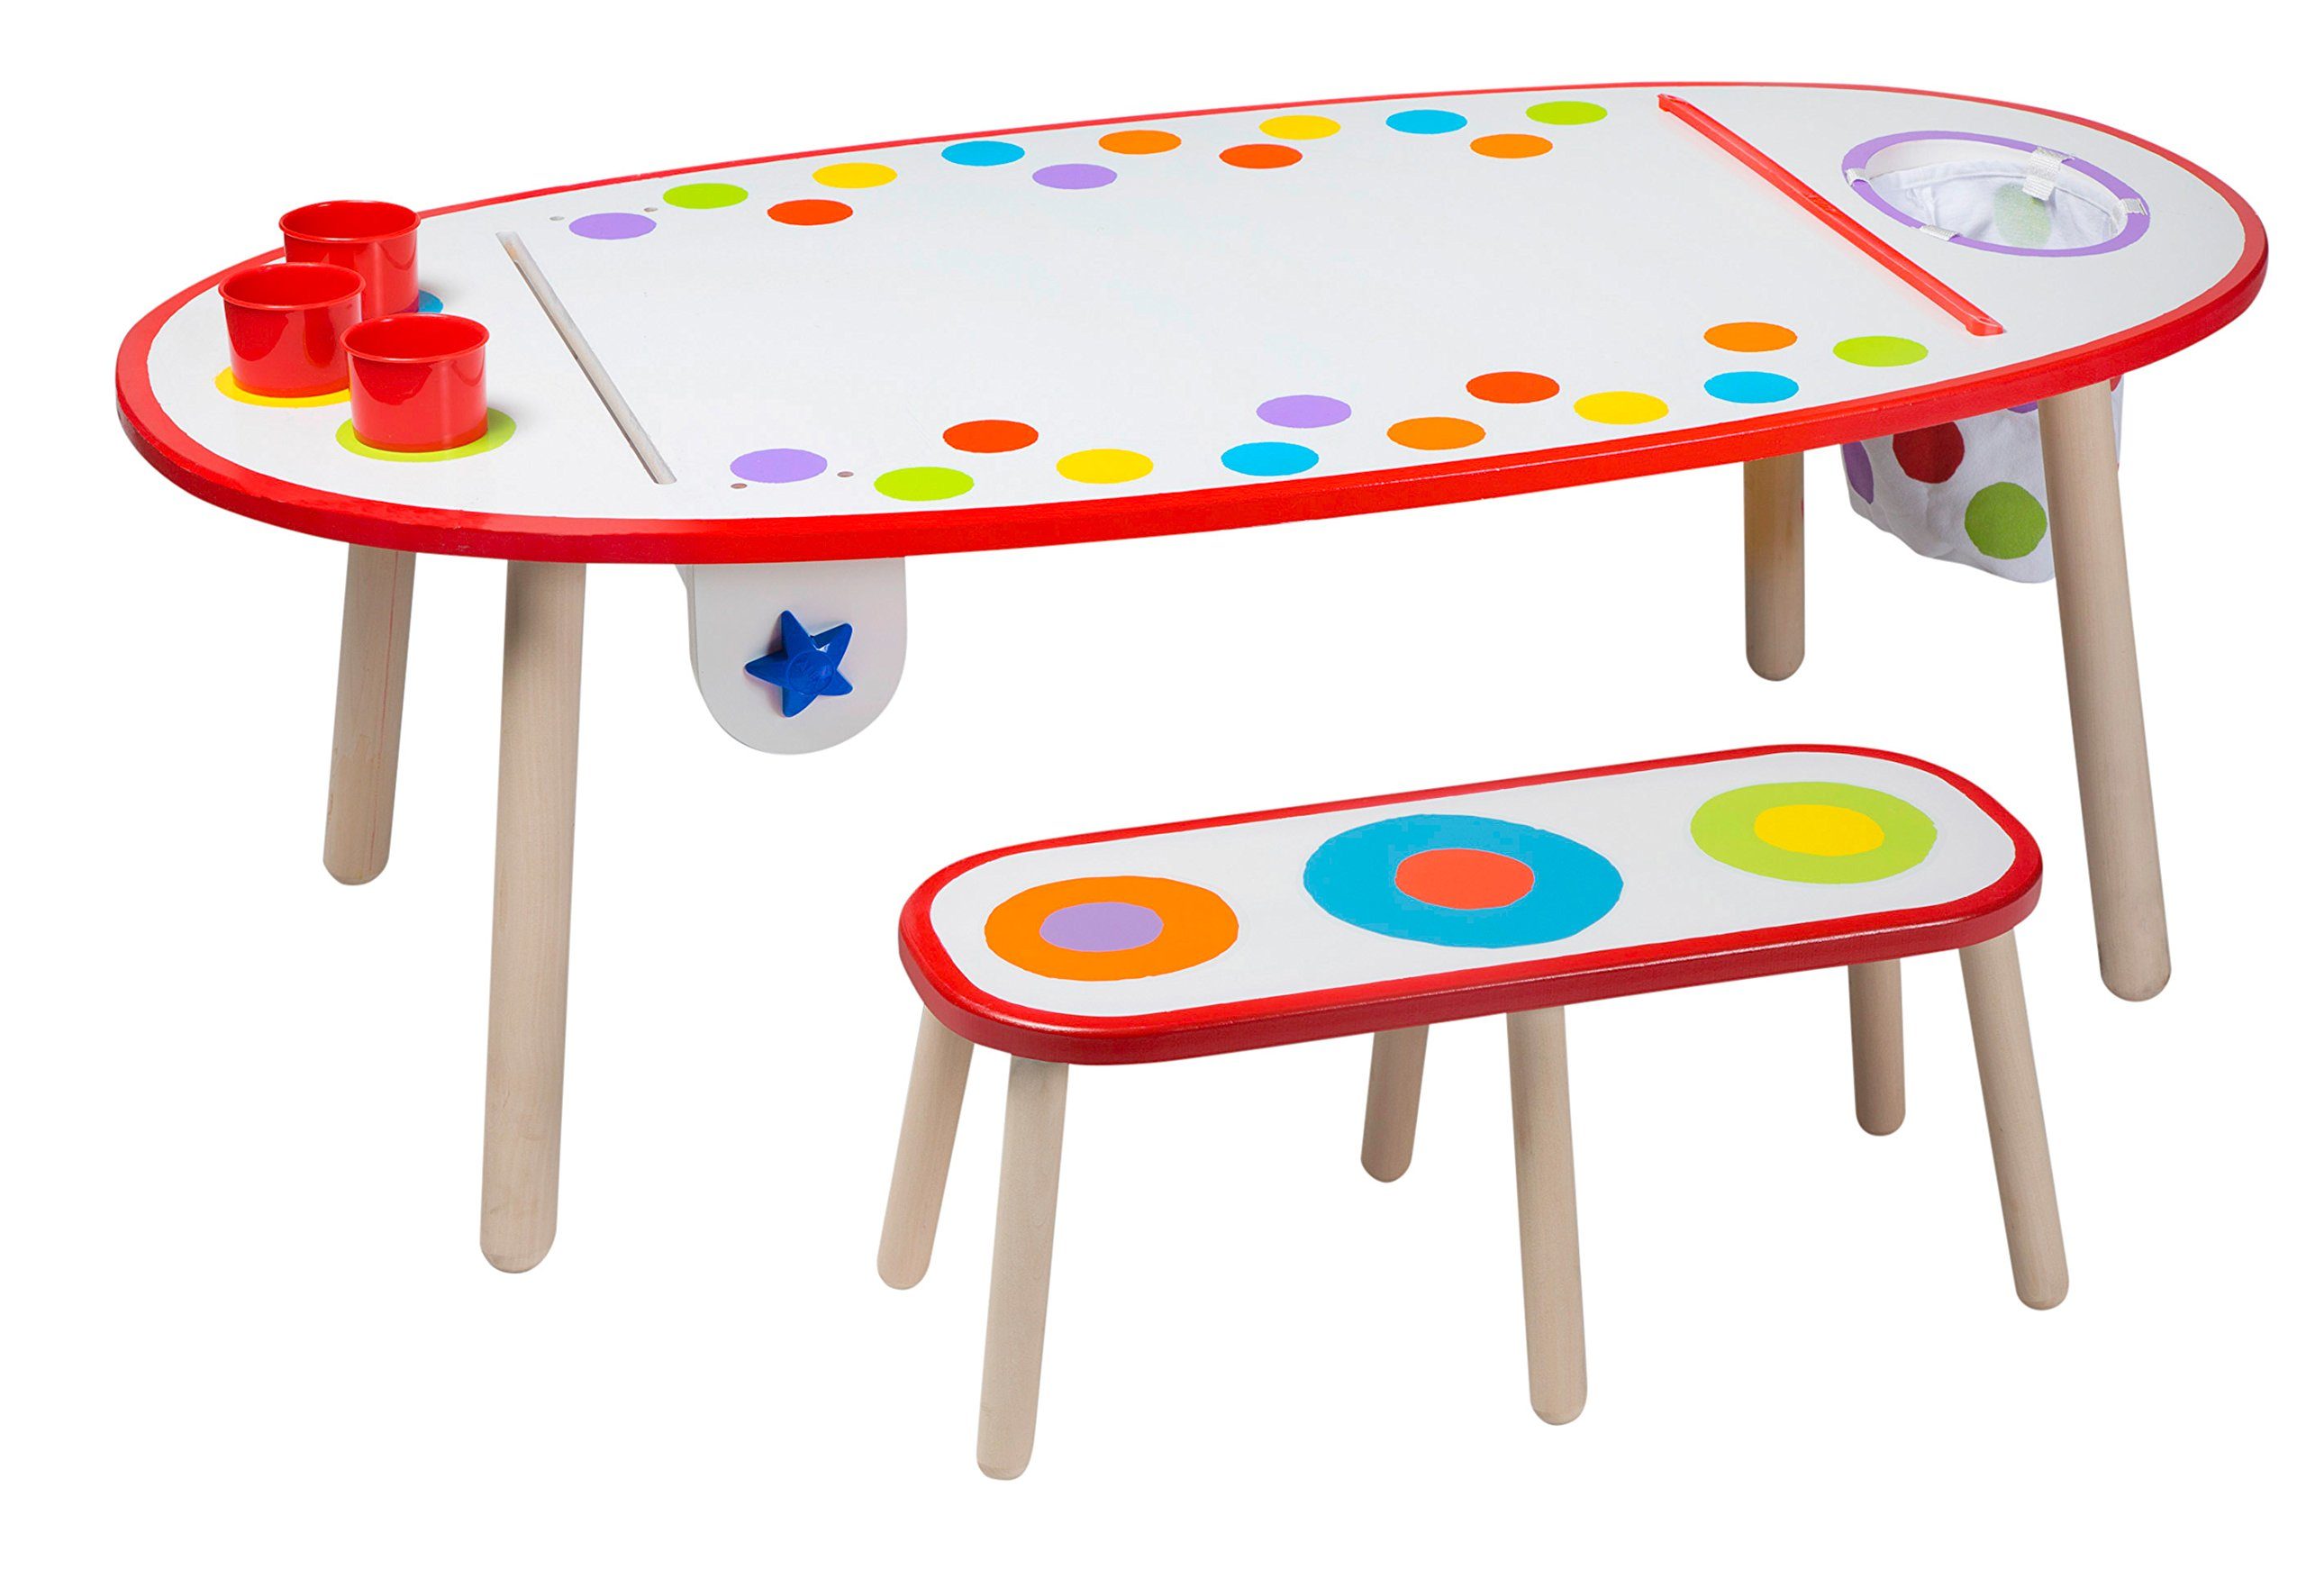 ALEX Toys Artist Studio Super Art Table Rainbow Dots